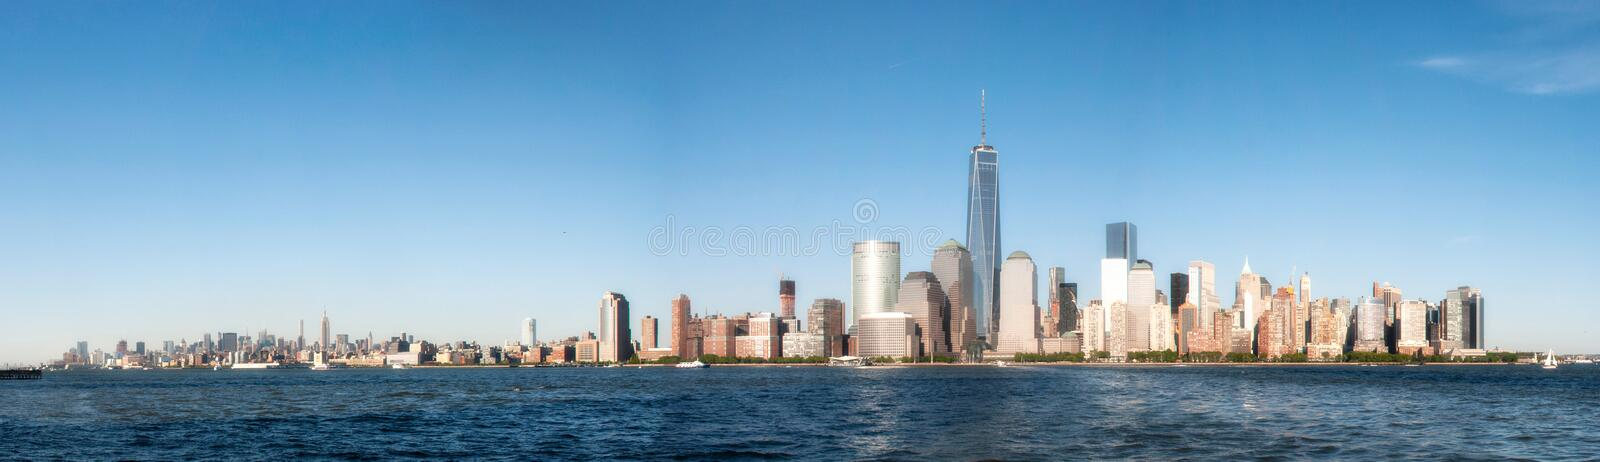 Panoramic view over Hudson River to New York City skyline royalty free stock images